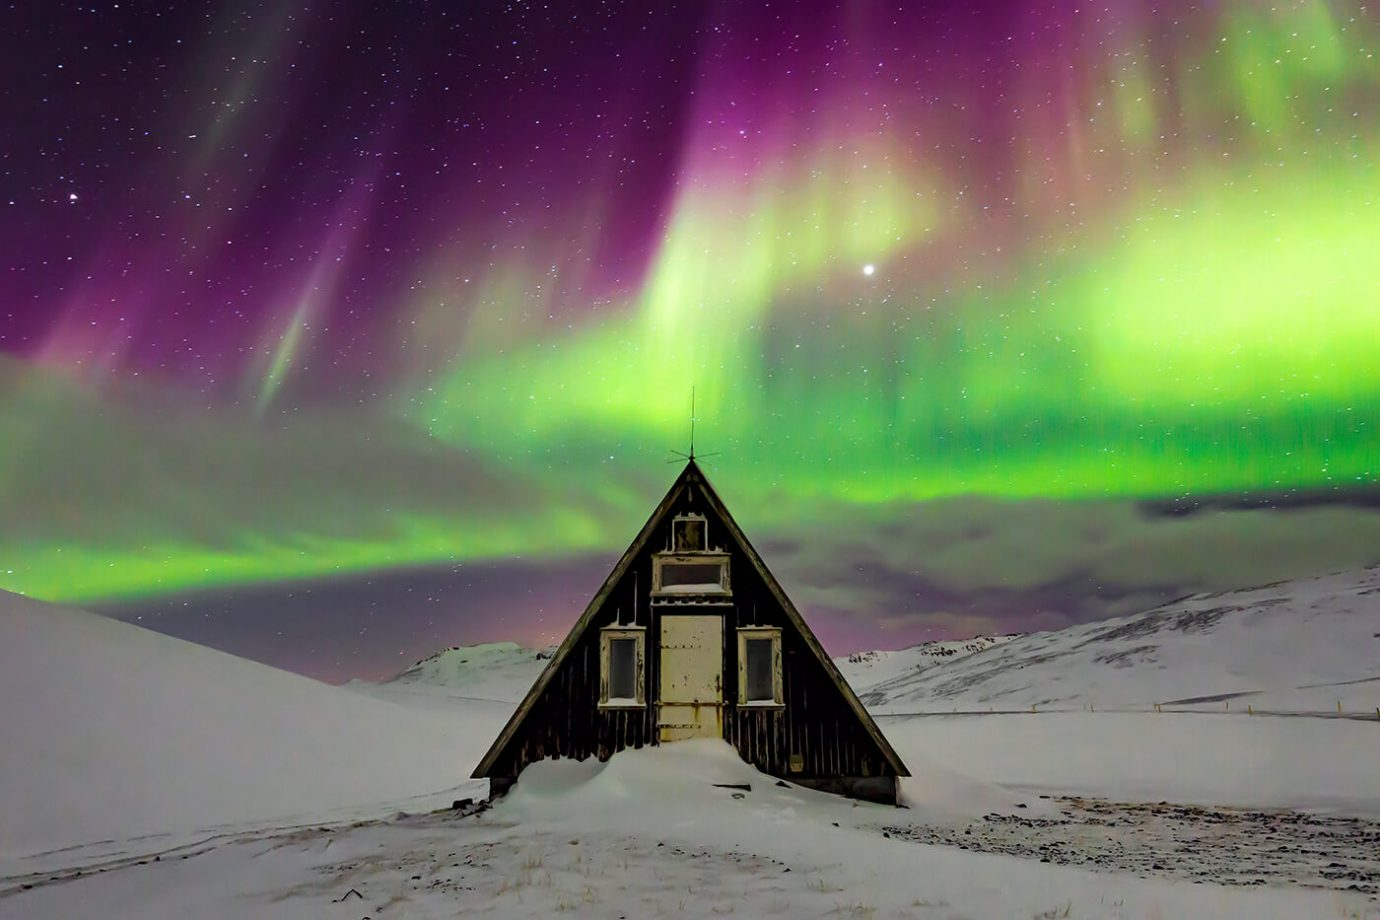 Aurora Borealis, Emergency Mountain Hut, Snæfellsnes Peninsula, Iceland